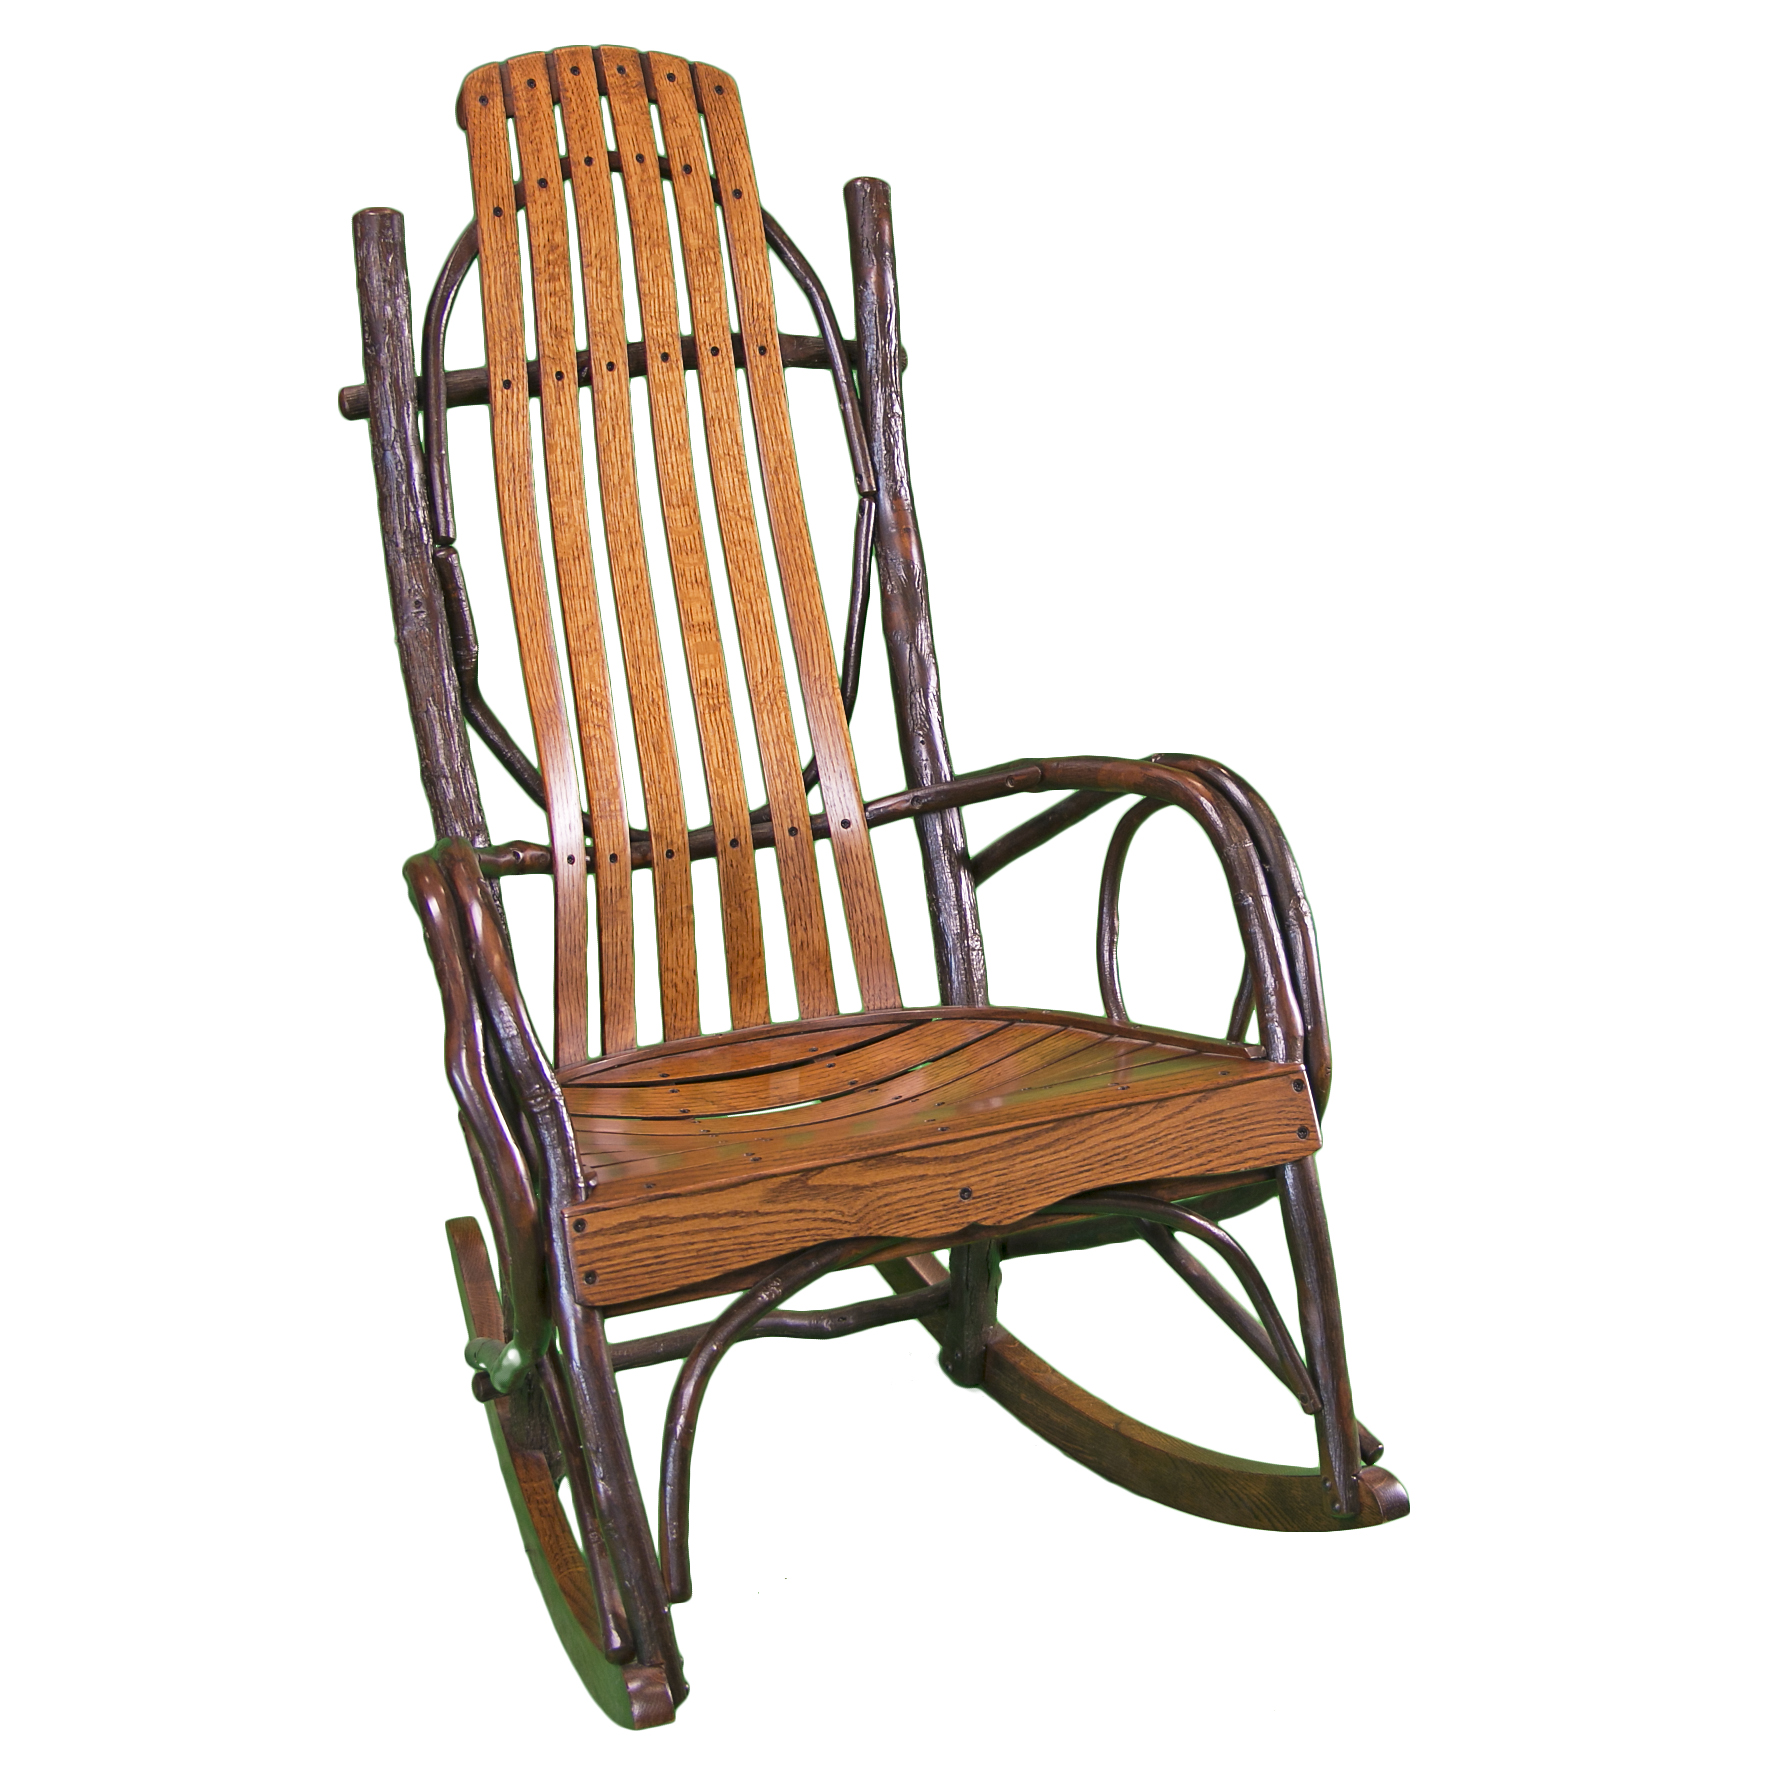 wooden rocking chair timber lodge furniture. Black Bedroom Furniture Sets. Home Design Ideas